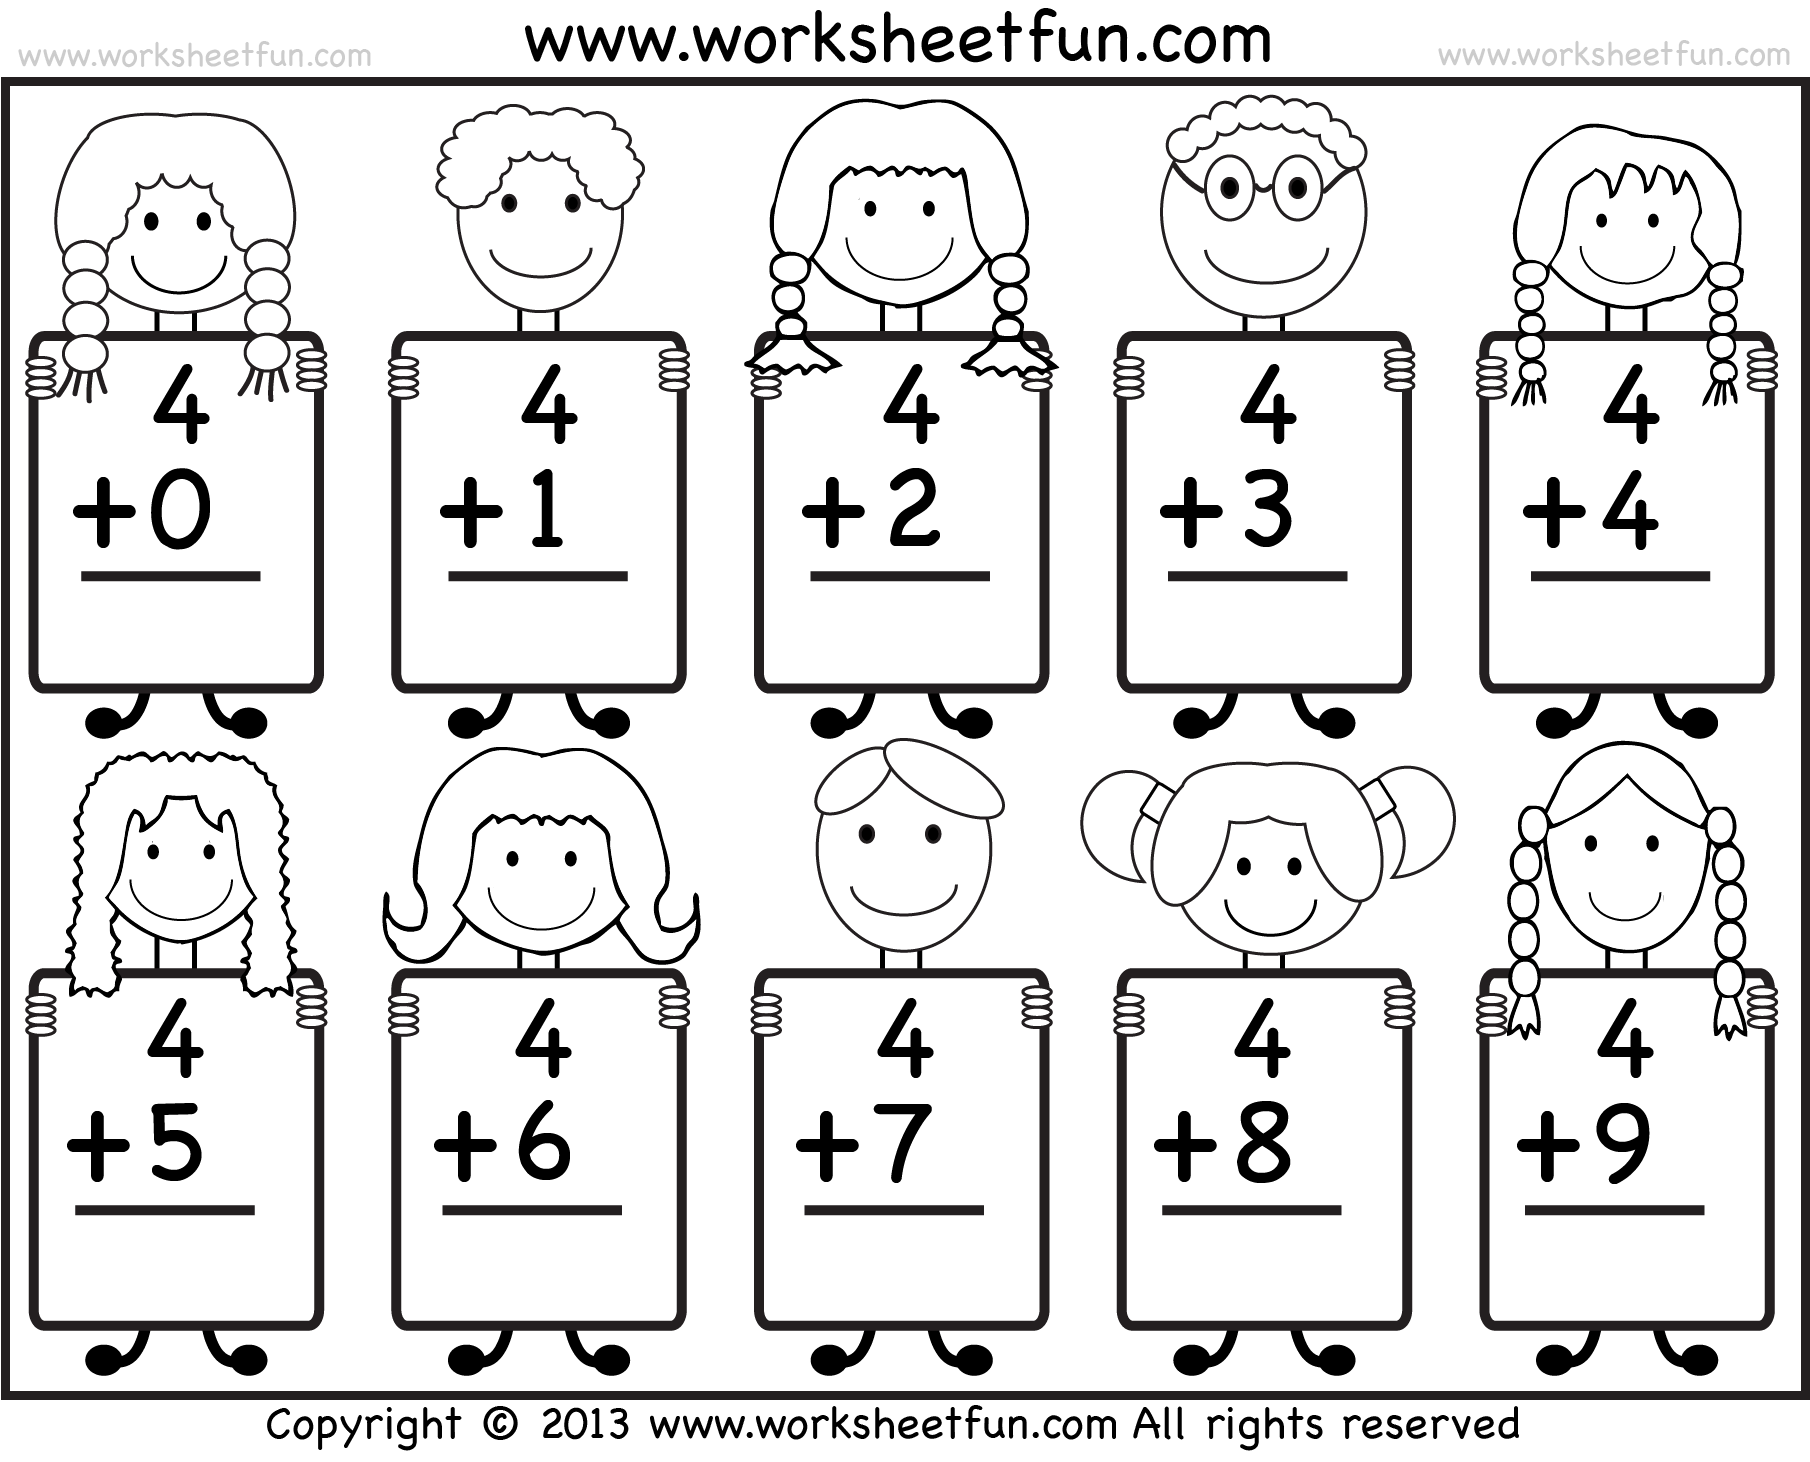 worksheet Kindergarden Worksheets worksheet 604780 kindergarten worksheets maths free preschool for printable scalien maths